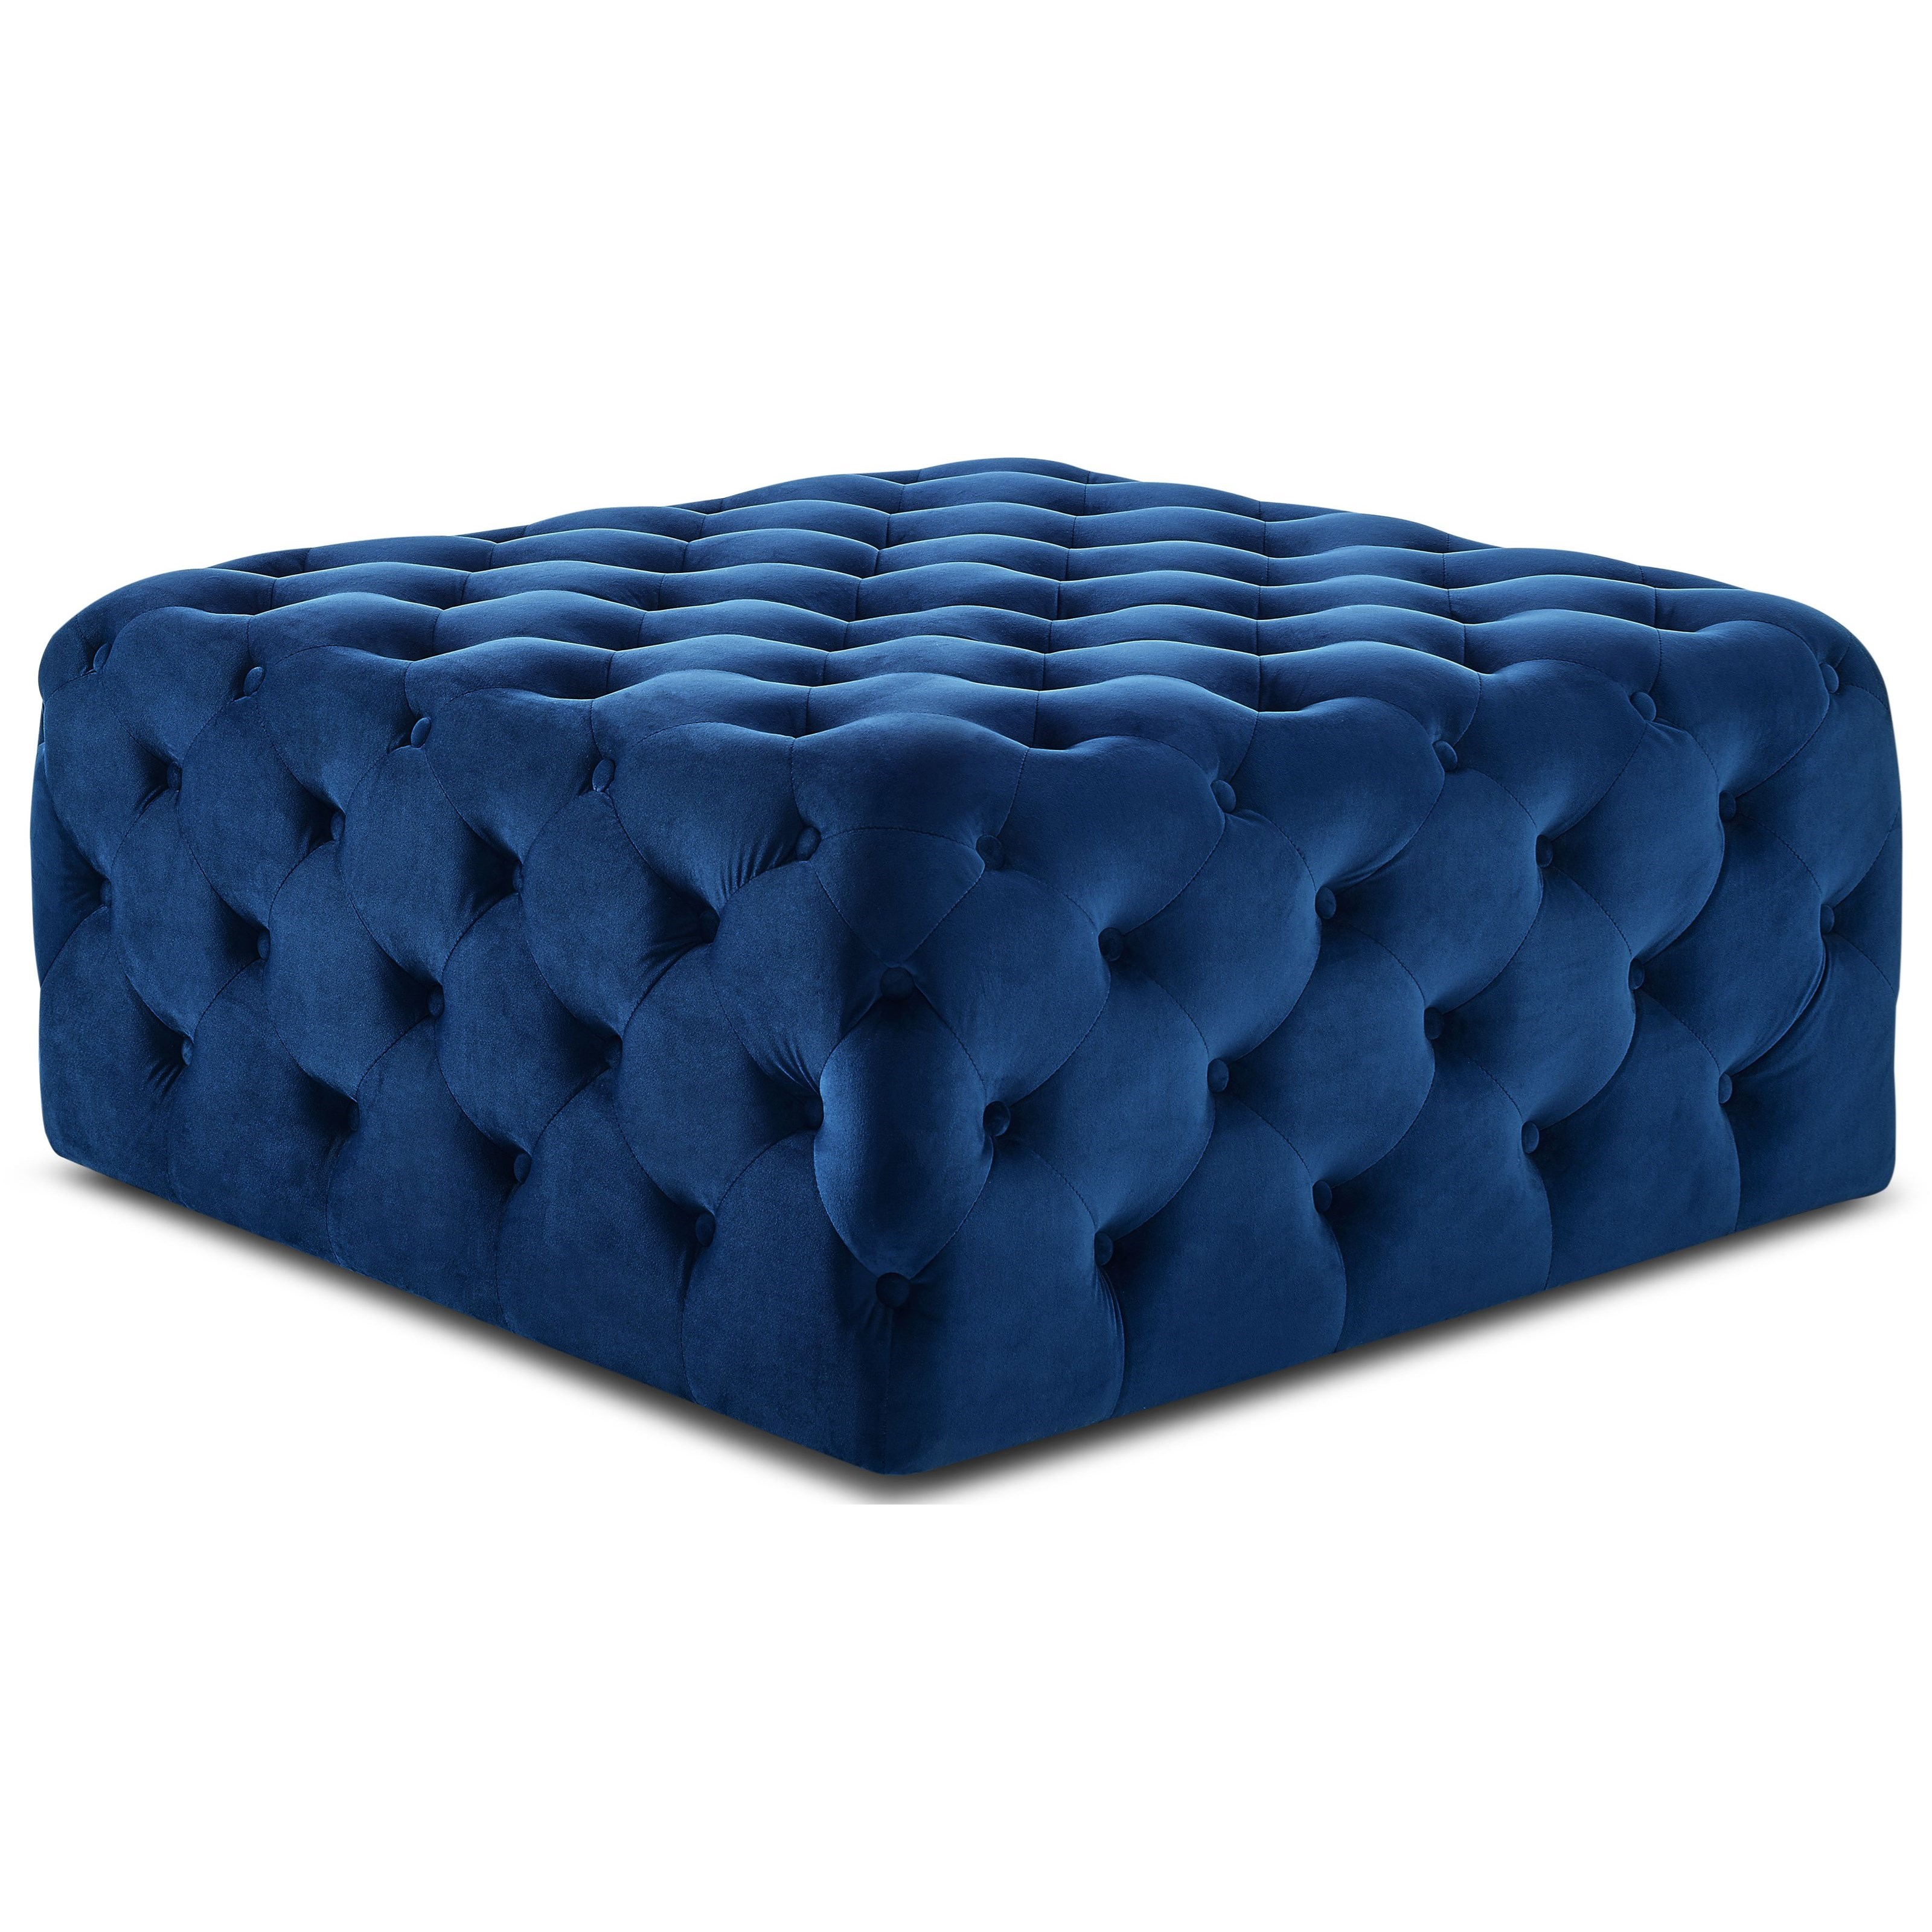 Belham Tufted Ottoman by Steve Silver at Northeast Factory Direct